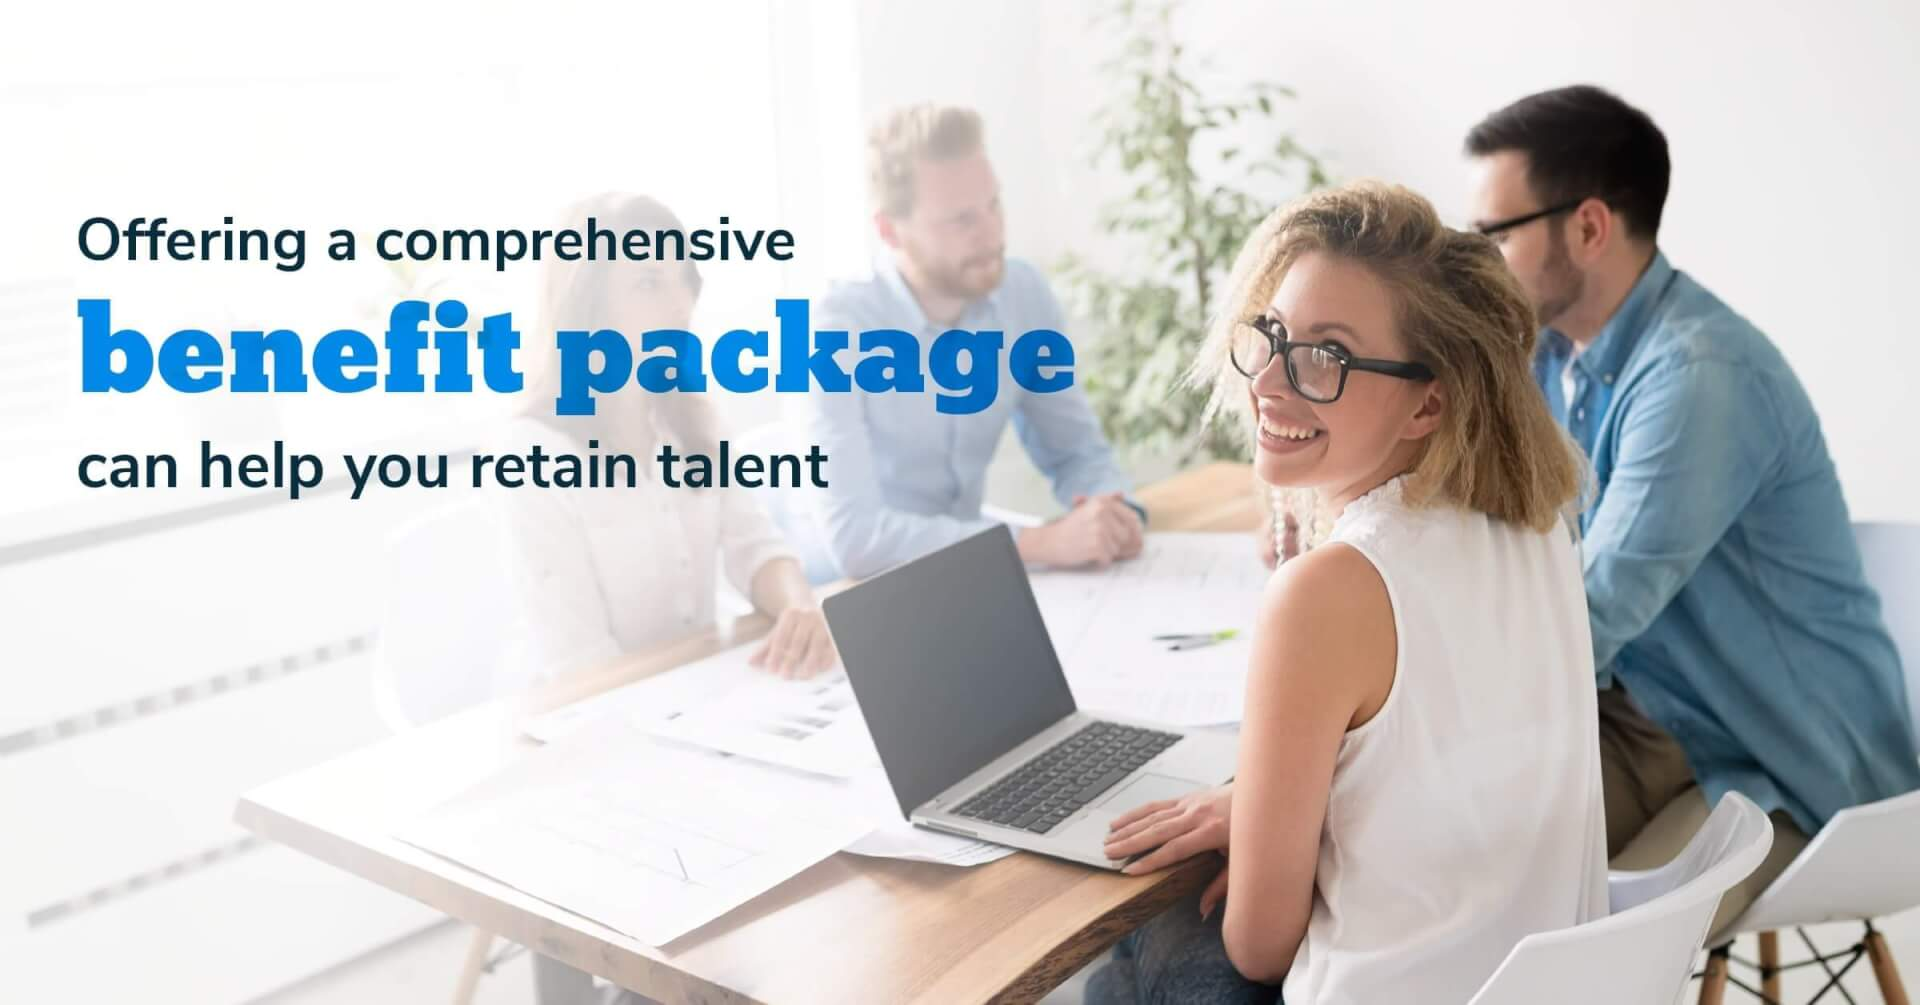 Social Benefits - Offering a Comprehensive Benefit Package Can Help You Retain Talent